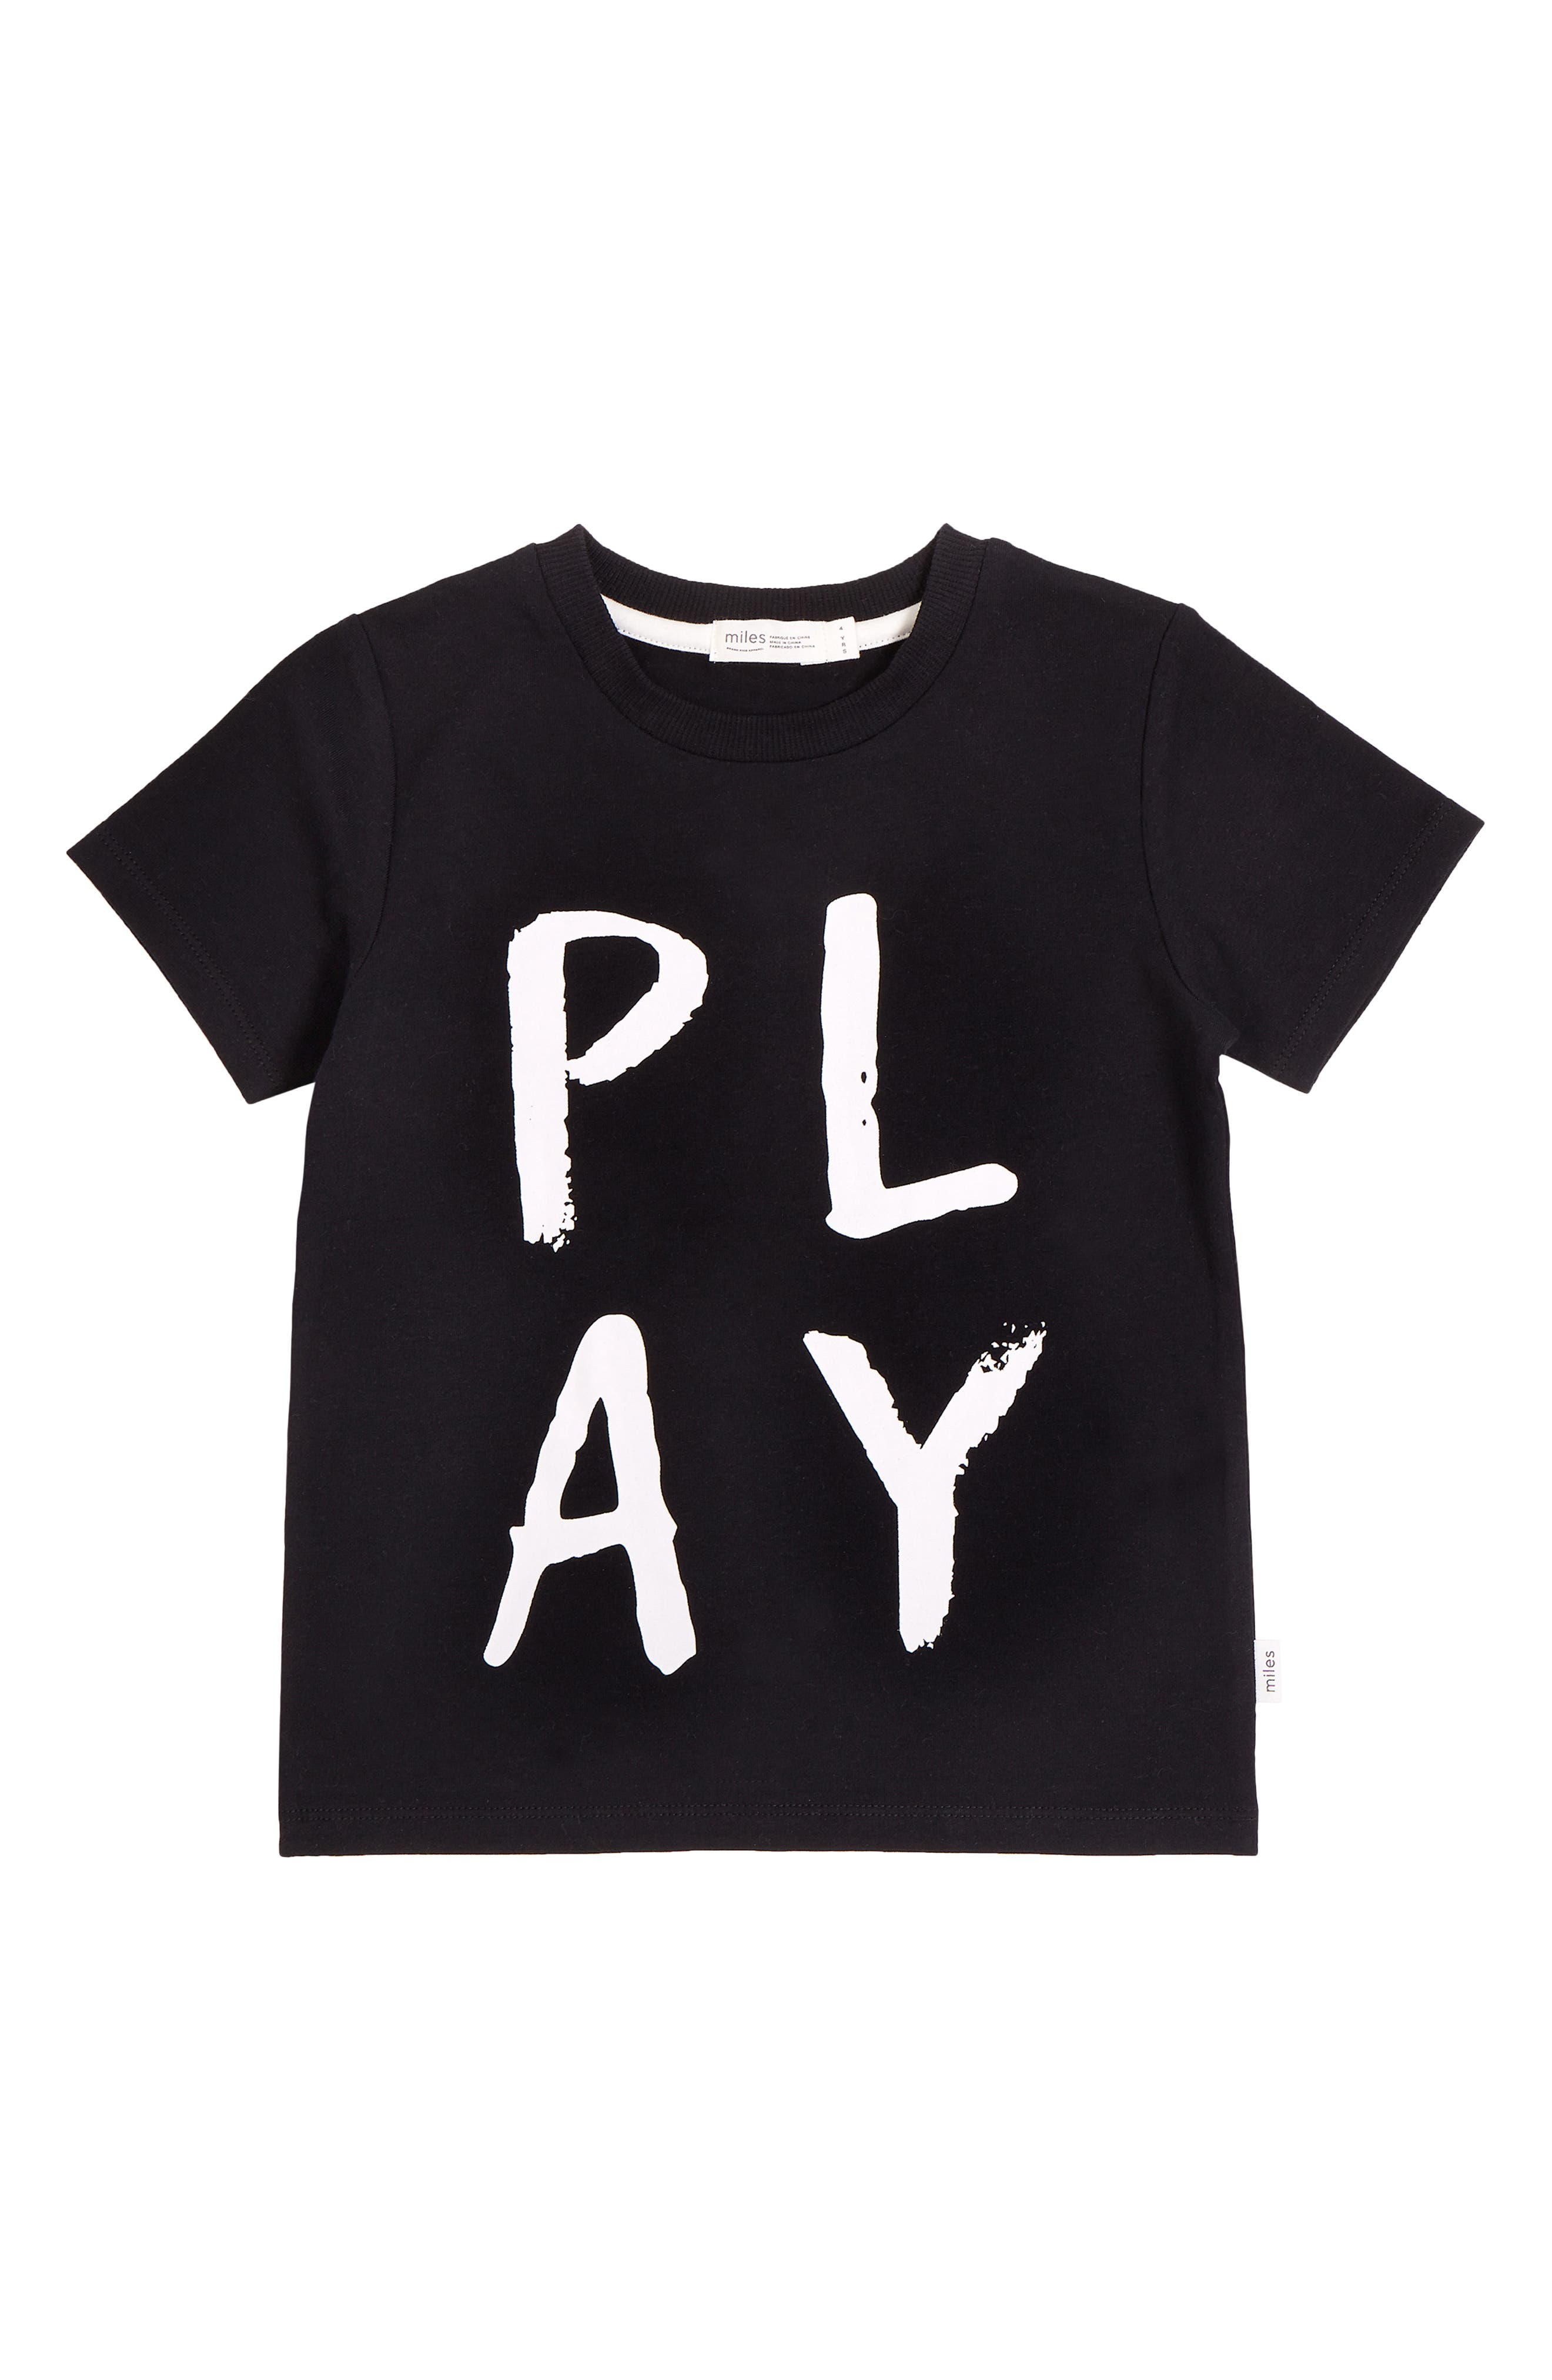 Keep your little one happy and ready to play all day in this comfy graphic tee cut from soft stretch organic cotton. Style Name: Miles Play Graphic Tee (Baby). Style Number: 6087362. Available in stores.